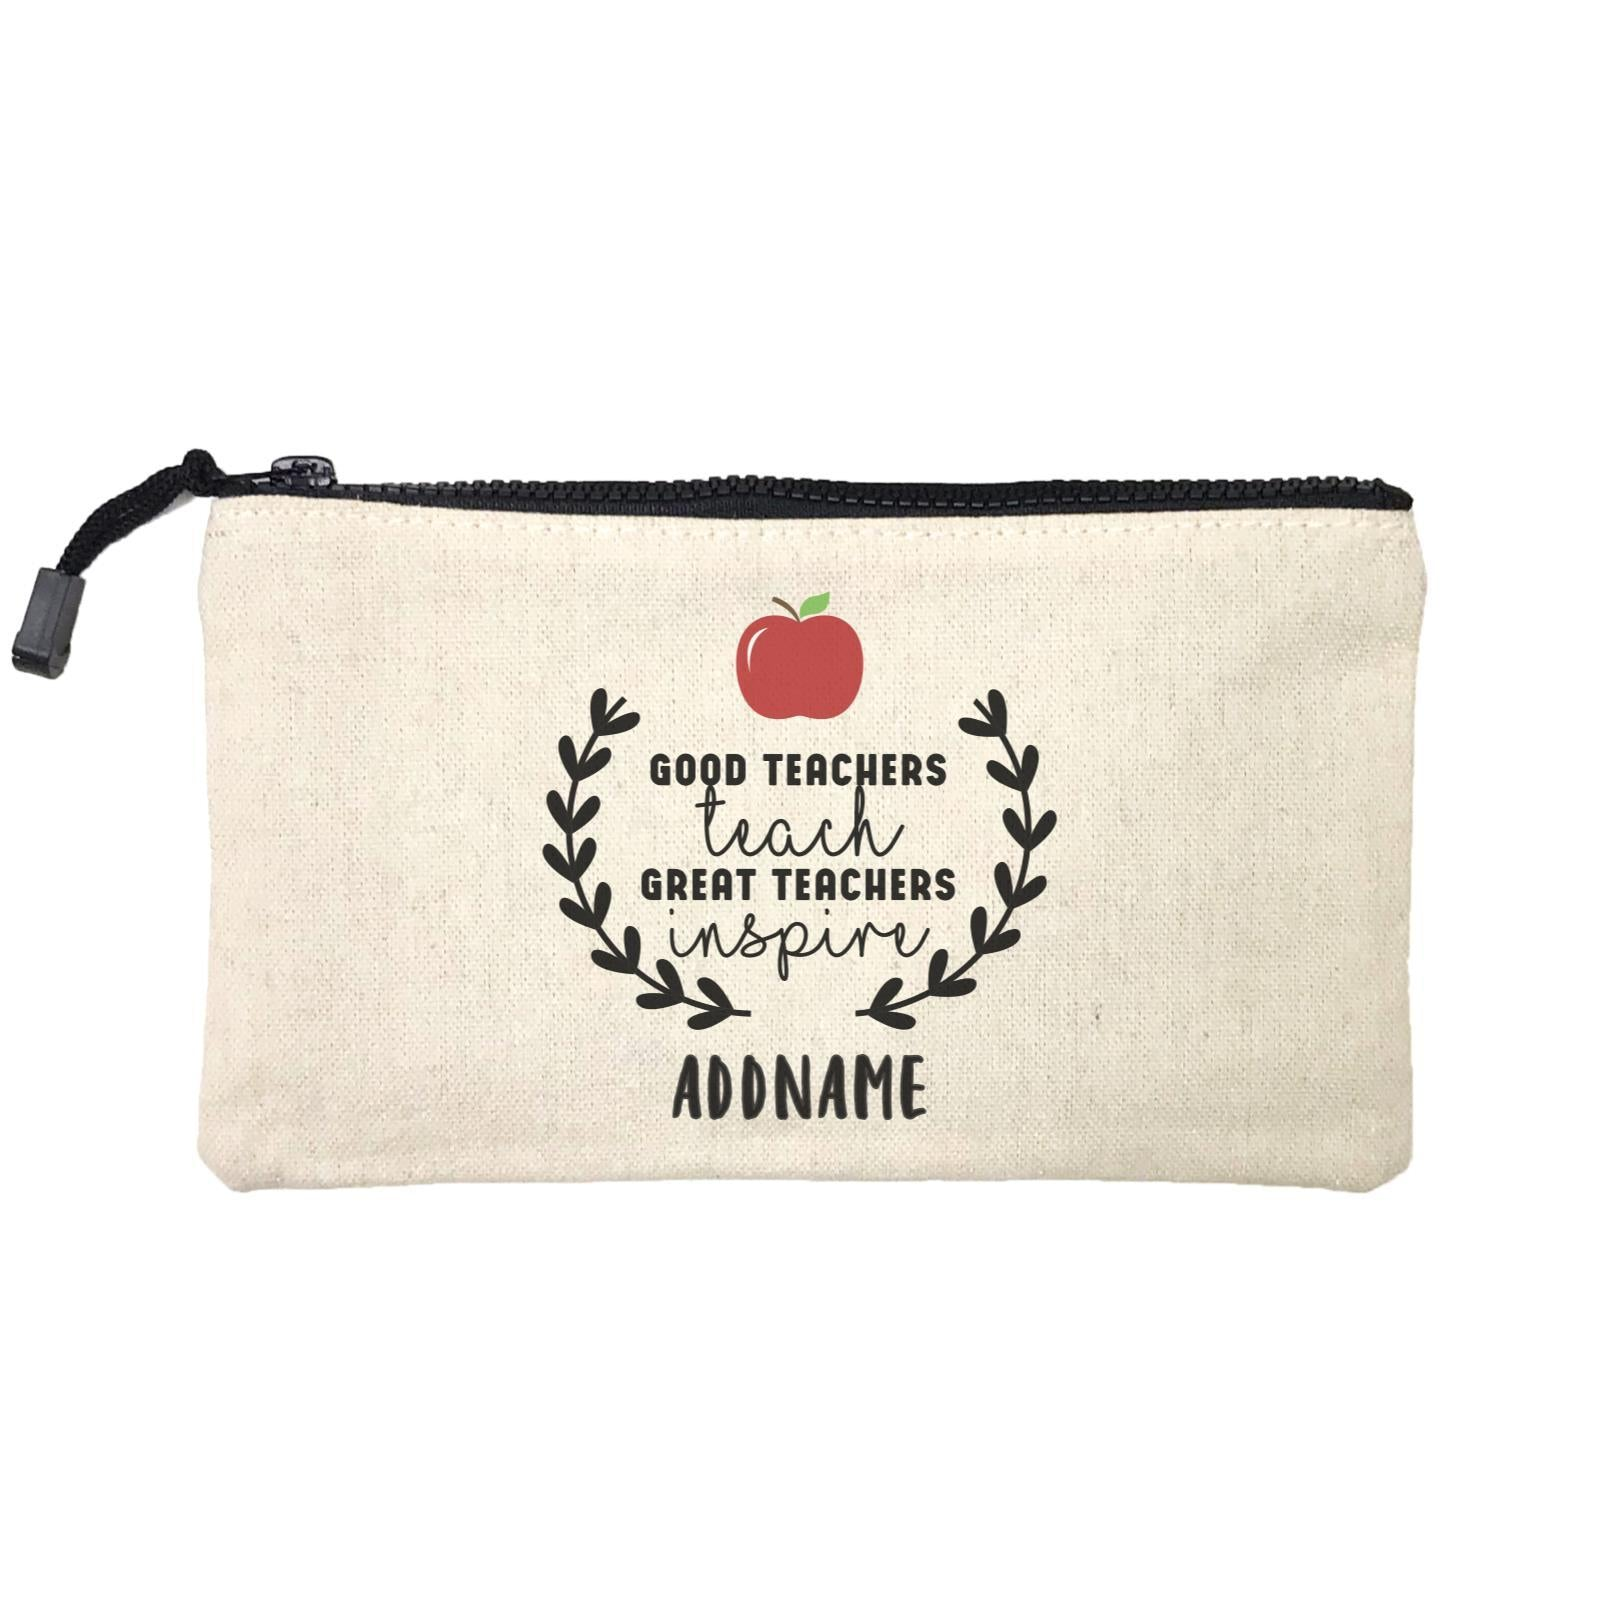 Great Teachers Good Teachers Teach Great Teachers Inspire Addname Mini Accessories Stationery Pouch